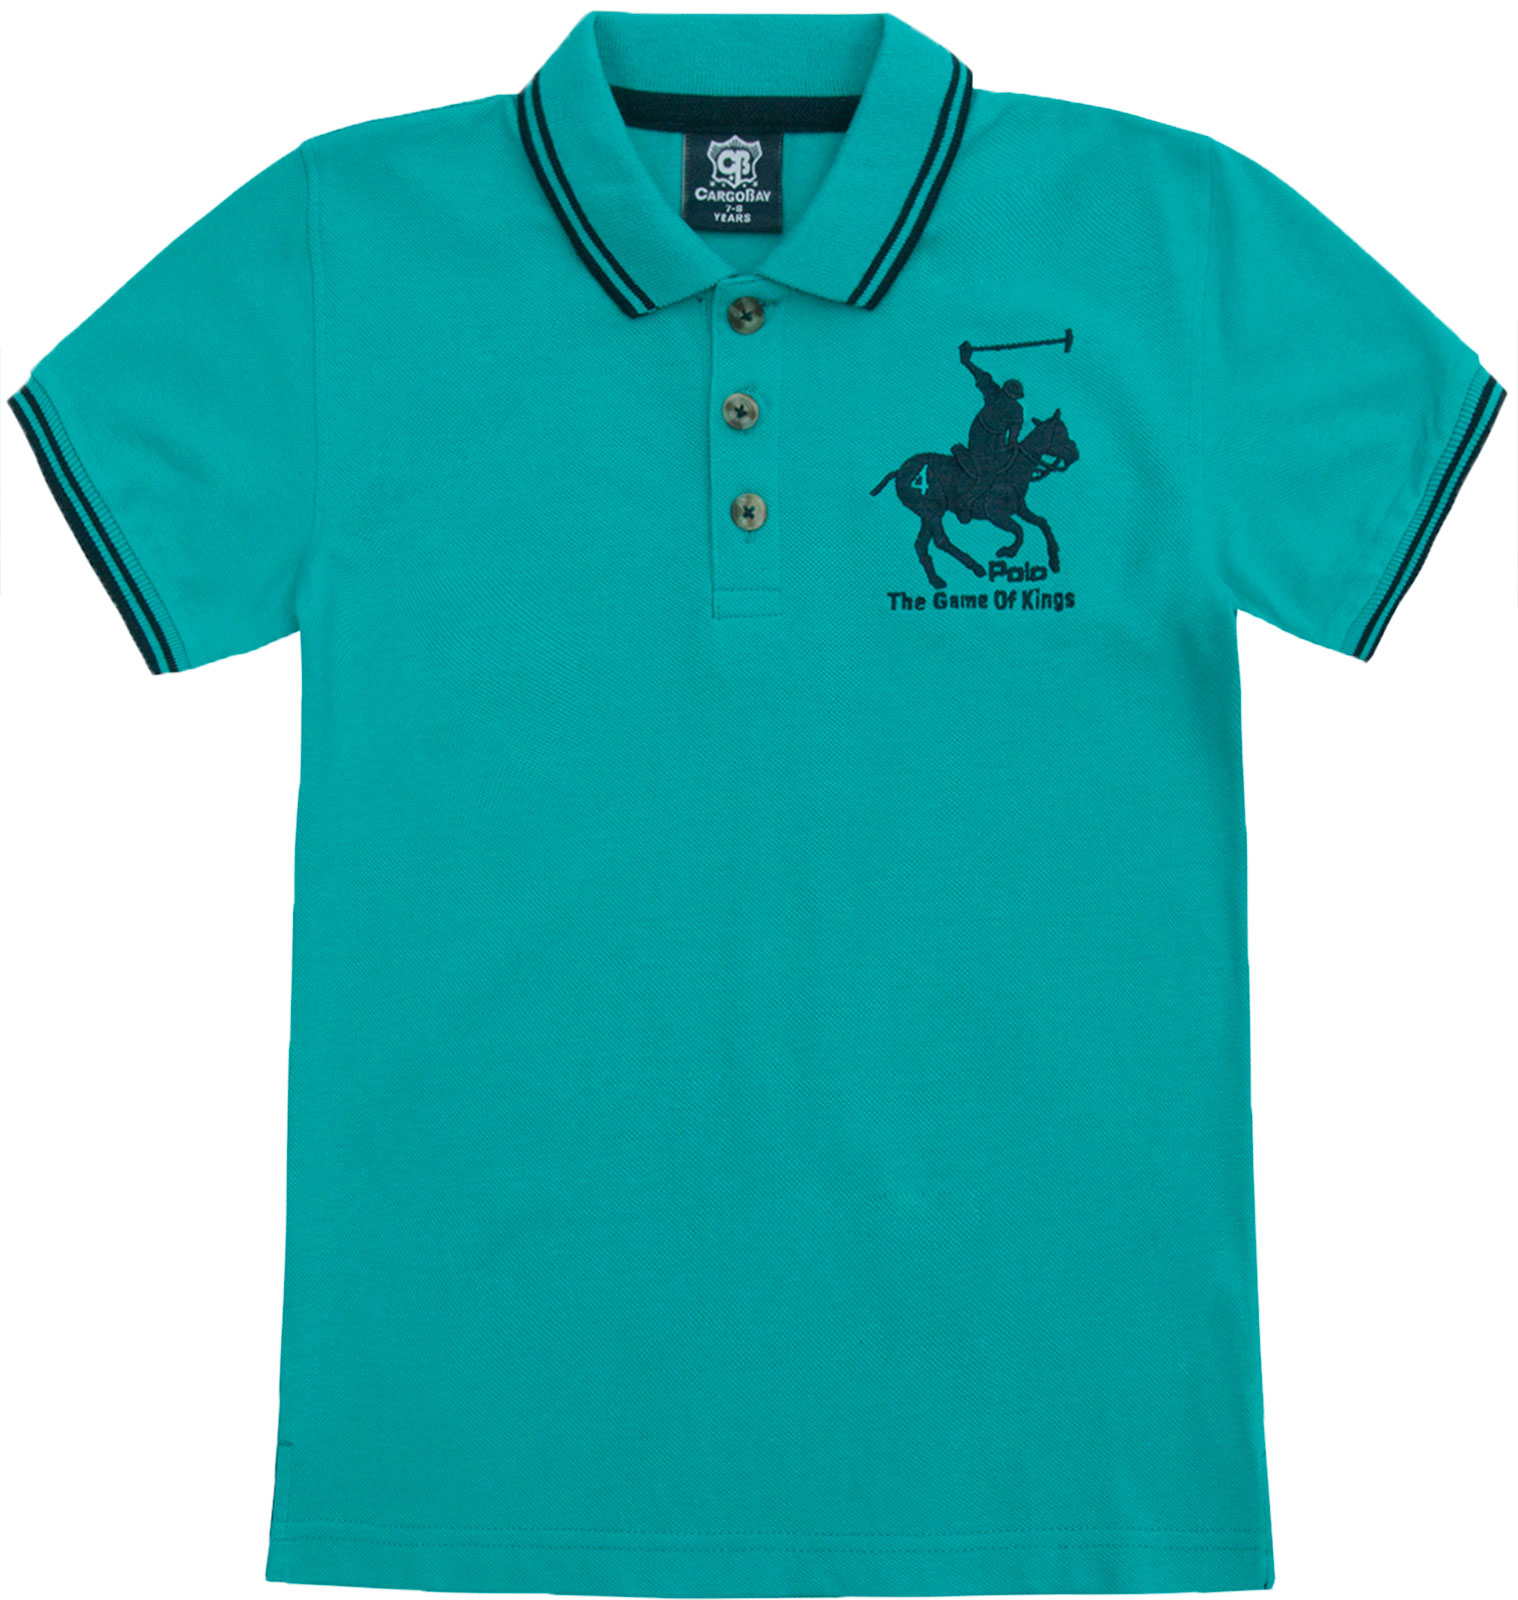 Boys-T-Shirt-Horse-Embroidery-Polo-Cotton-Top-Age-2-3-4-5-6-7-8-9-10-11-12-13-Yr thumbnail 14